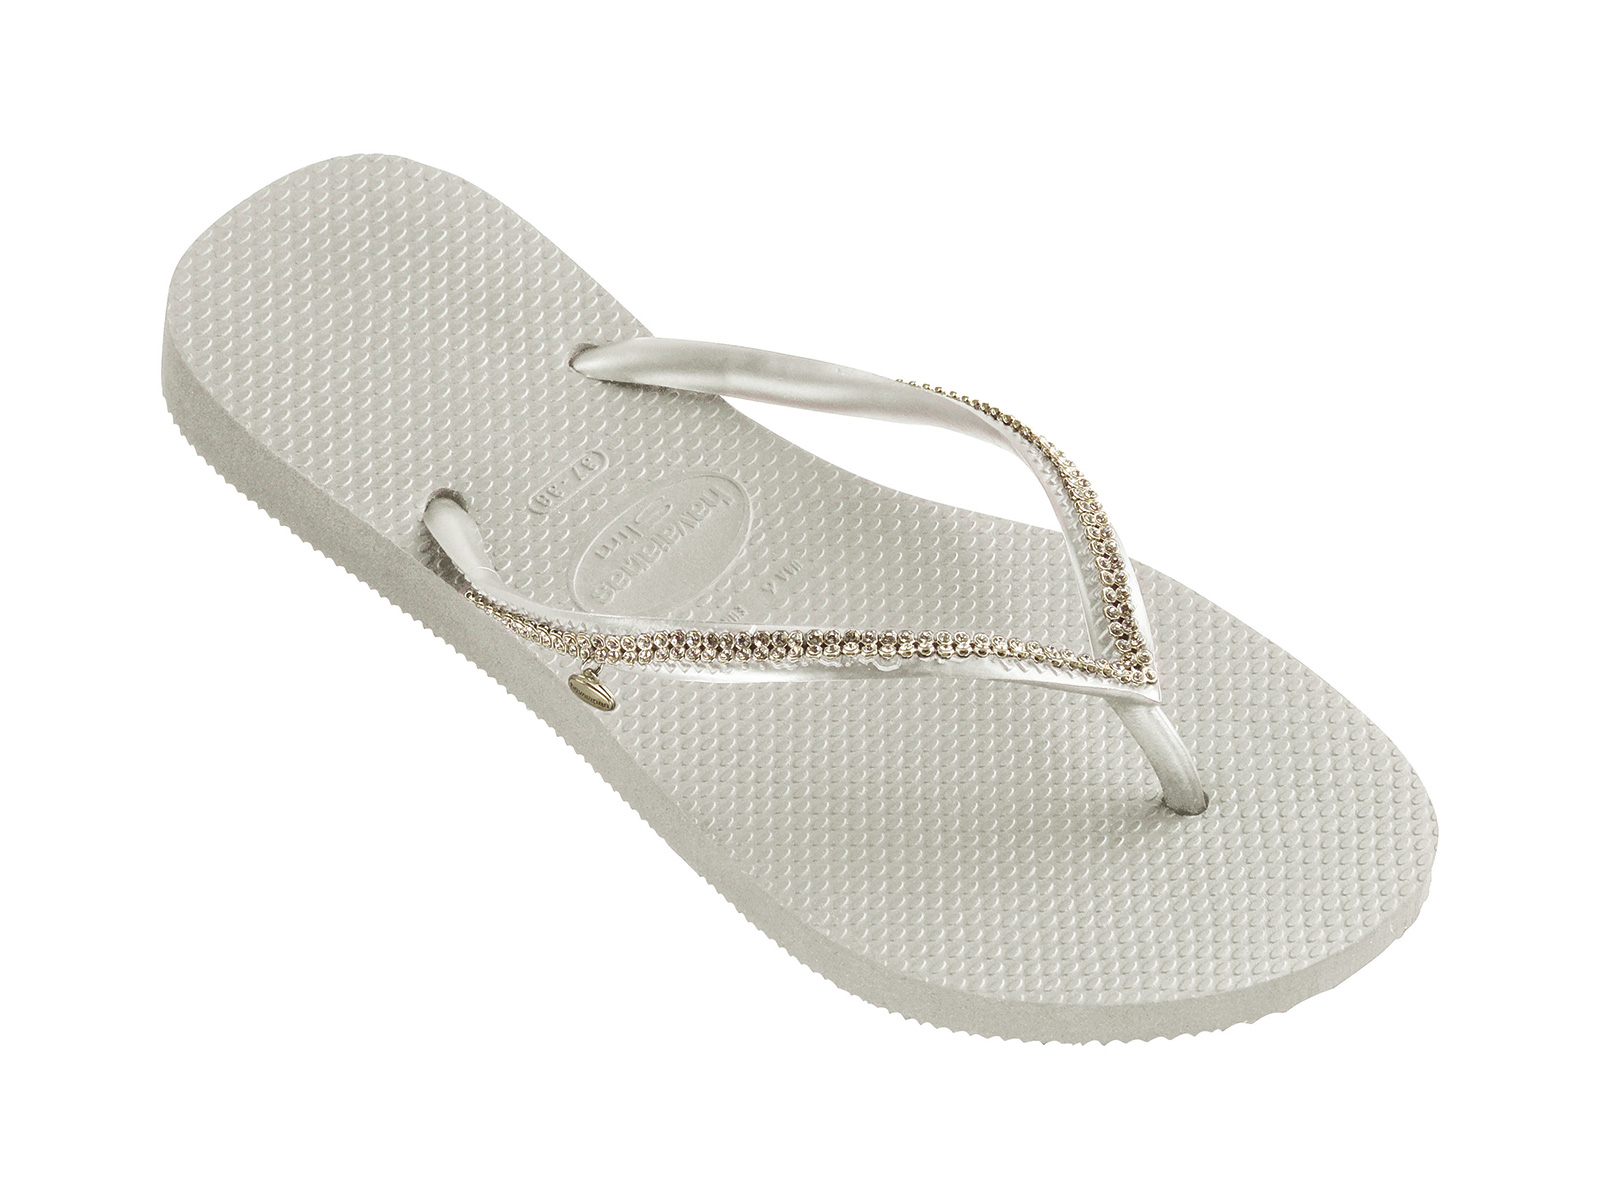 d78a00099 White Flip-flops With Swarovski Crystals - Slim Crystal Mesh Sw White -  Havaianas